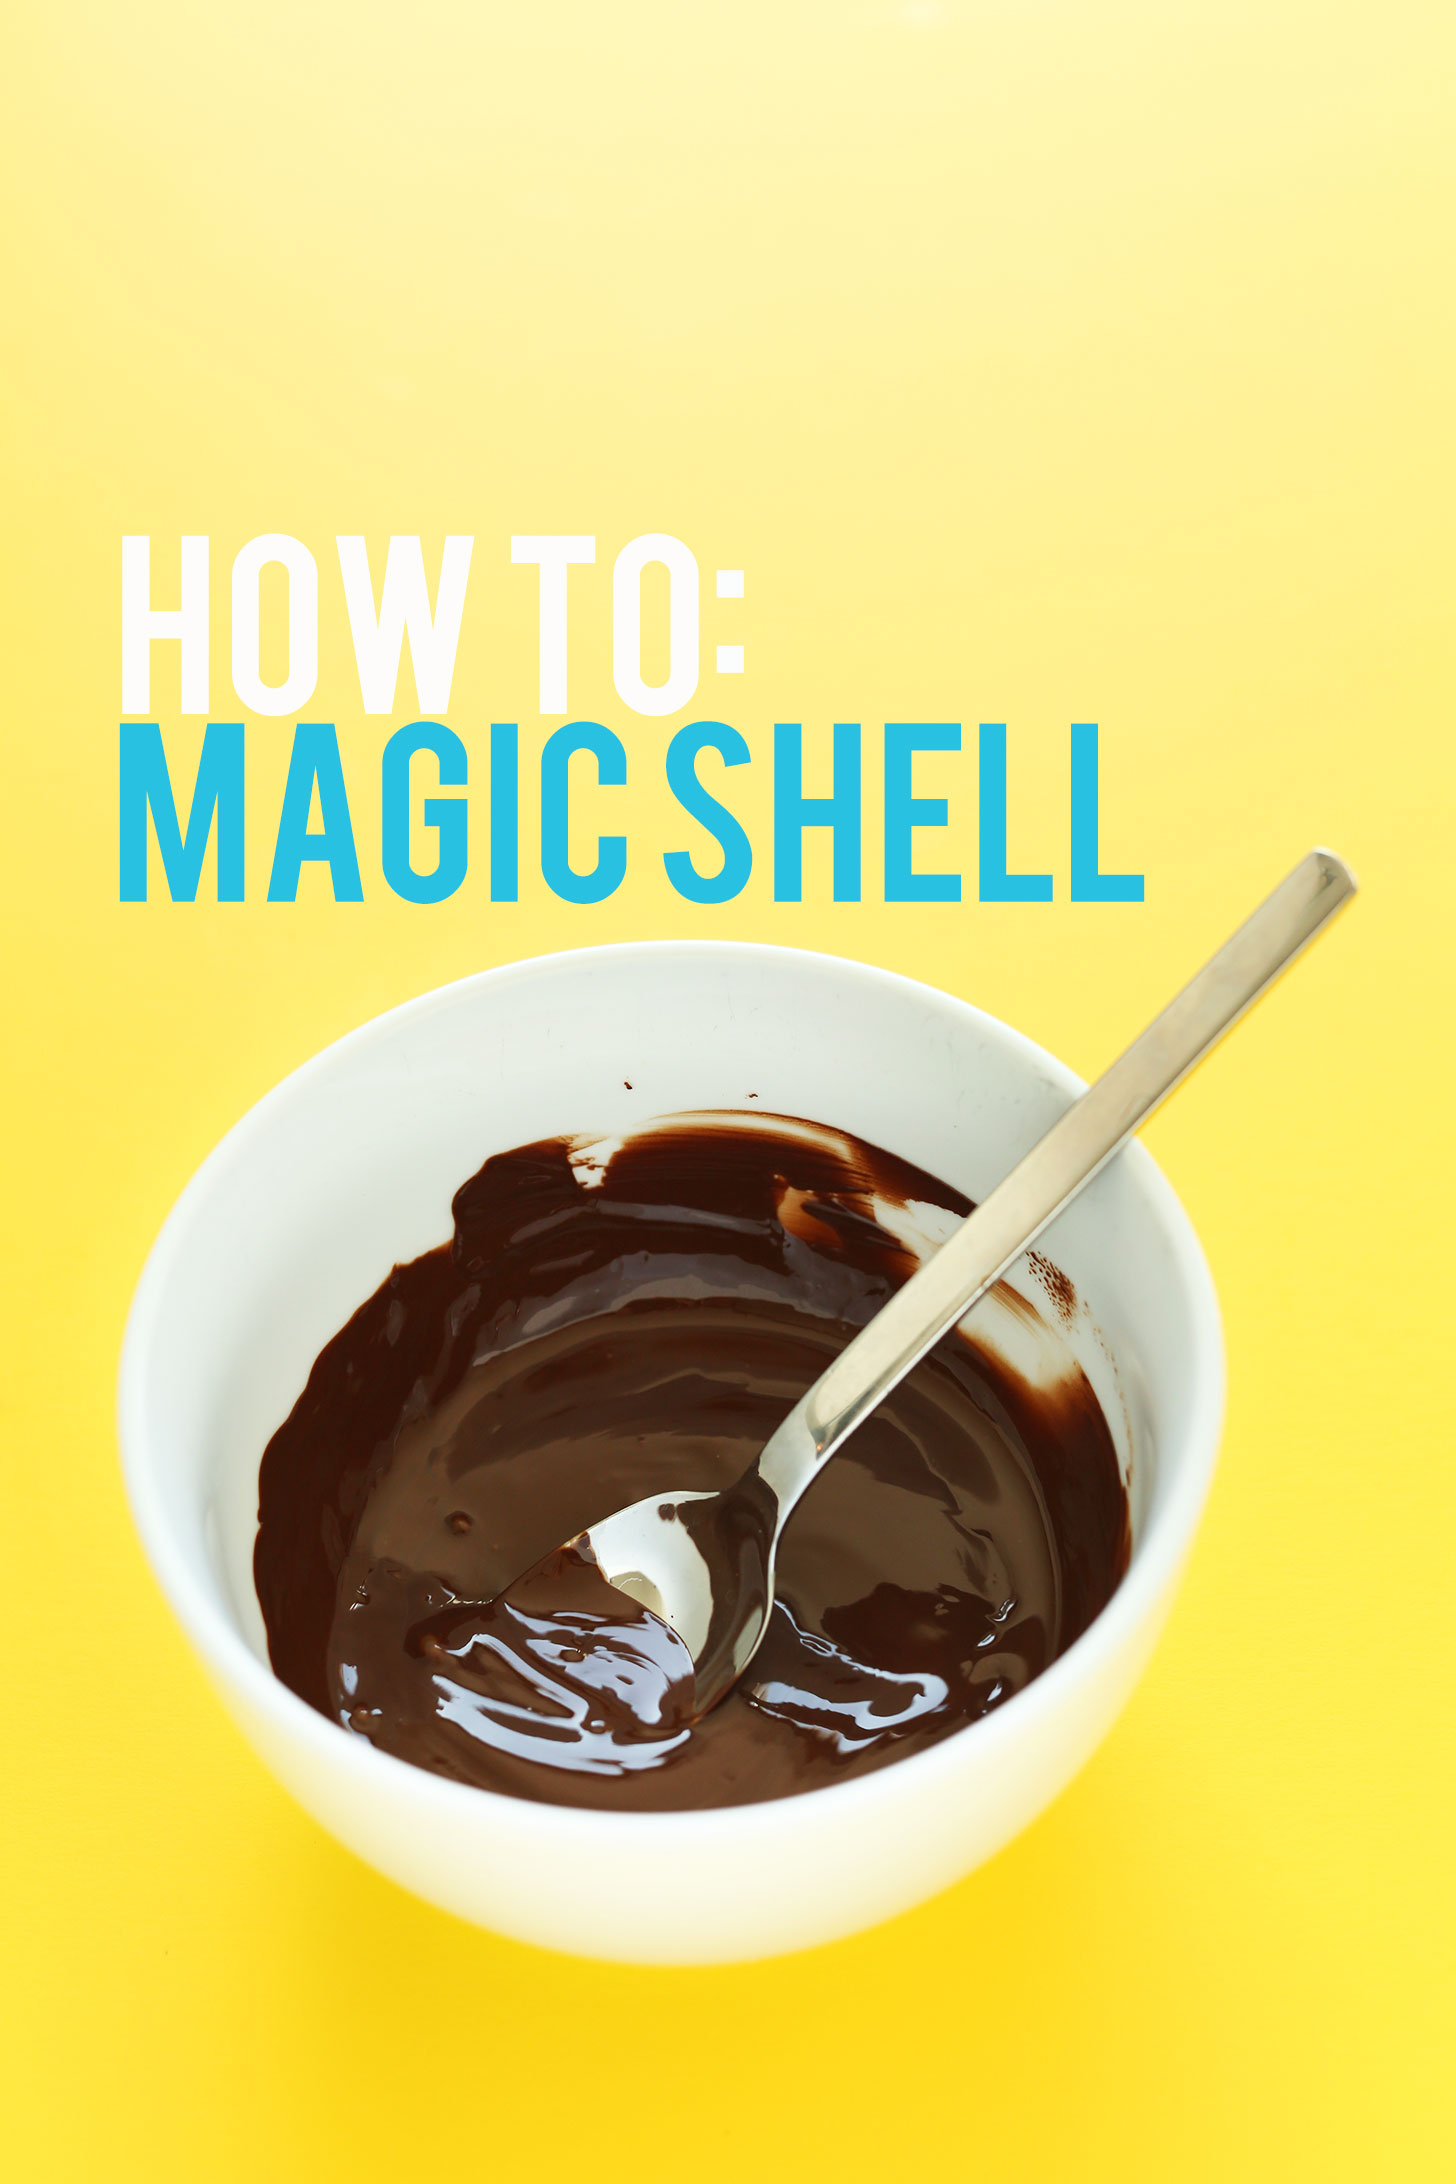 How To Make Magic Shell